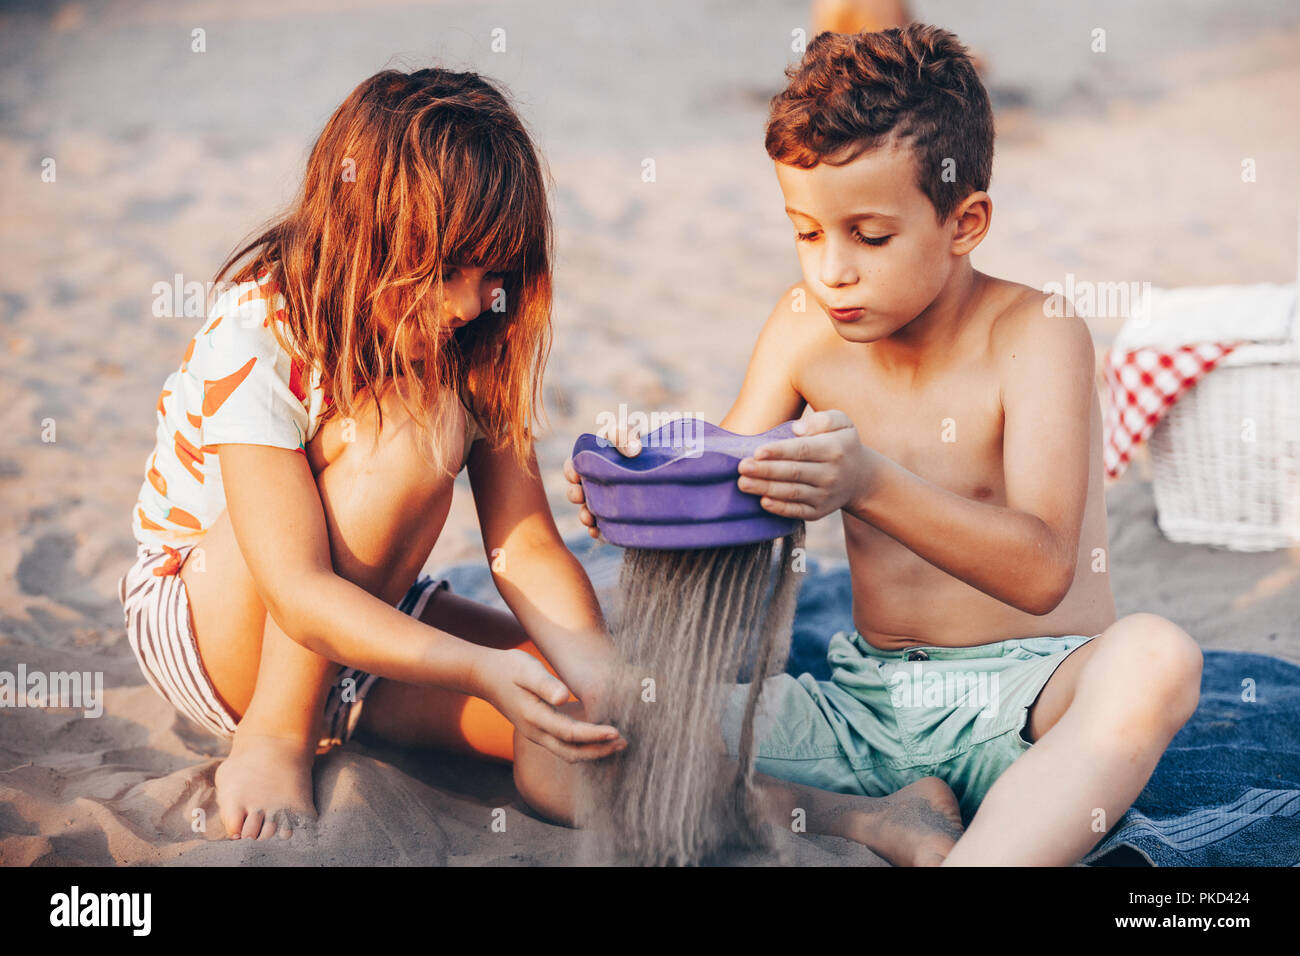 Happy positive children sitting on a towel on the beach and playing with sand. Summer vacation and healthy lifestyle concept - Stock Image